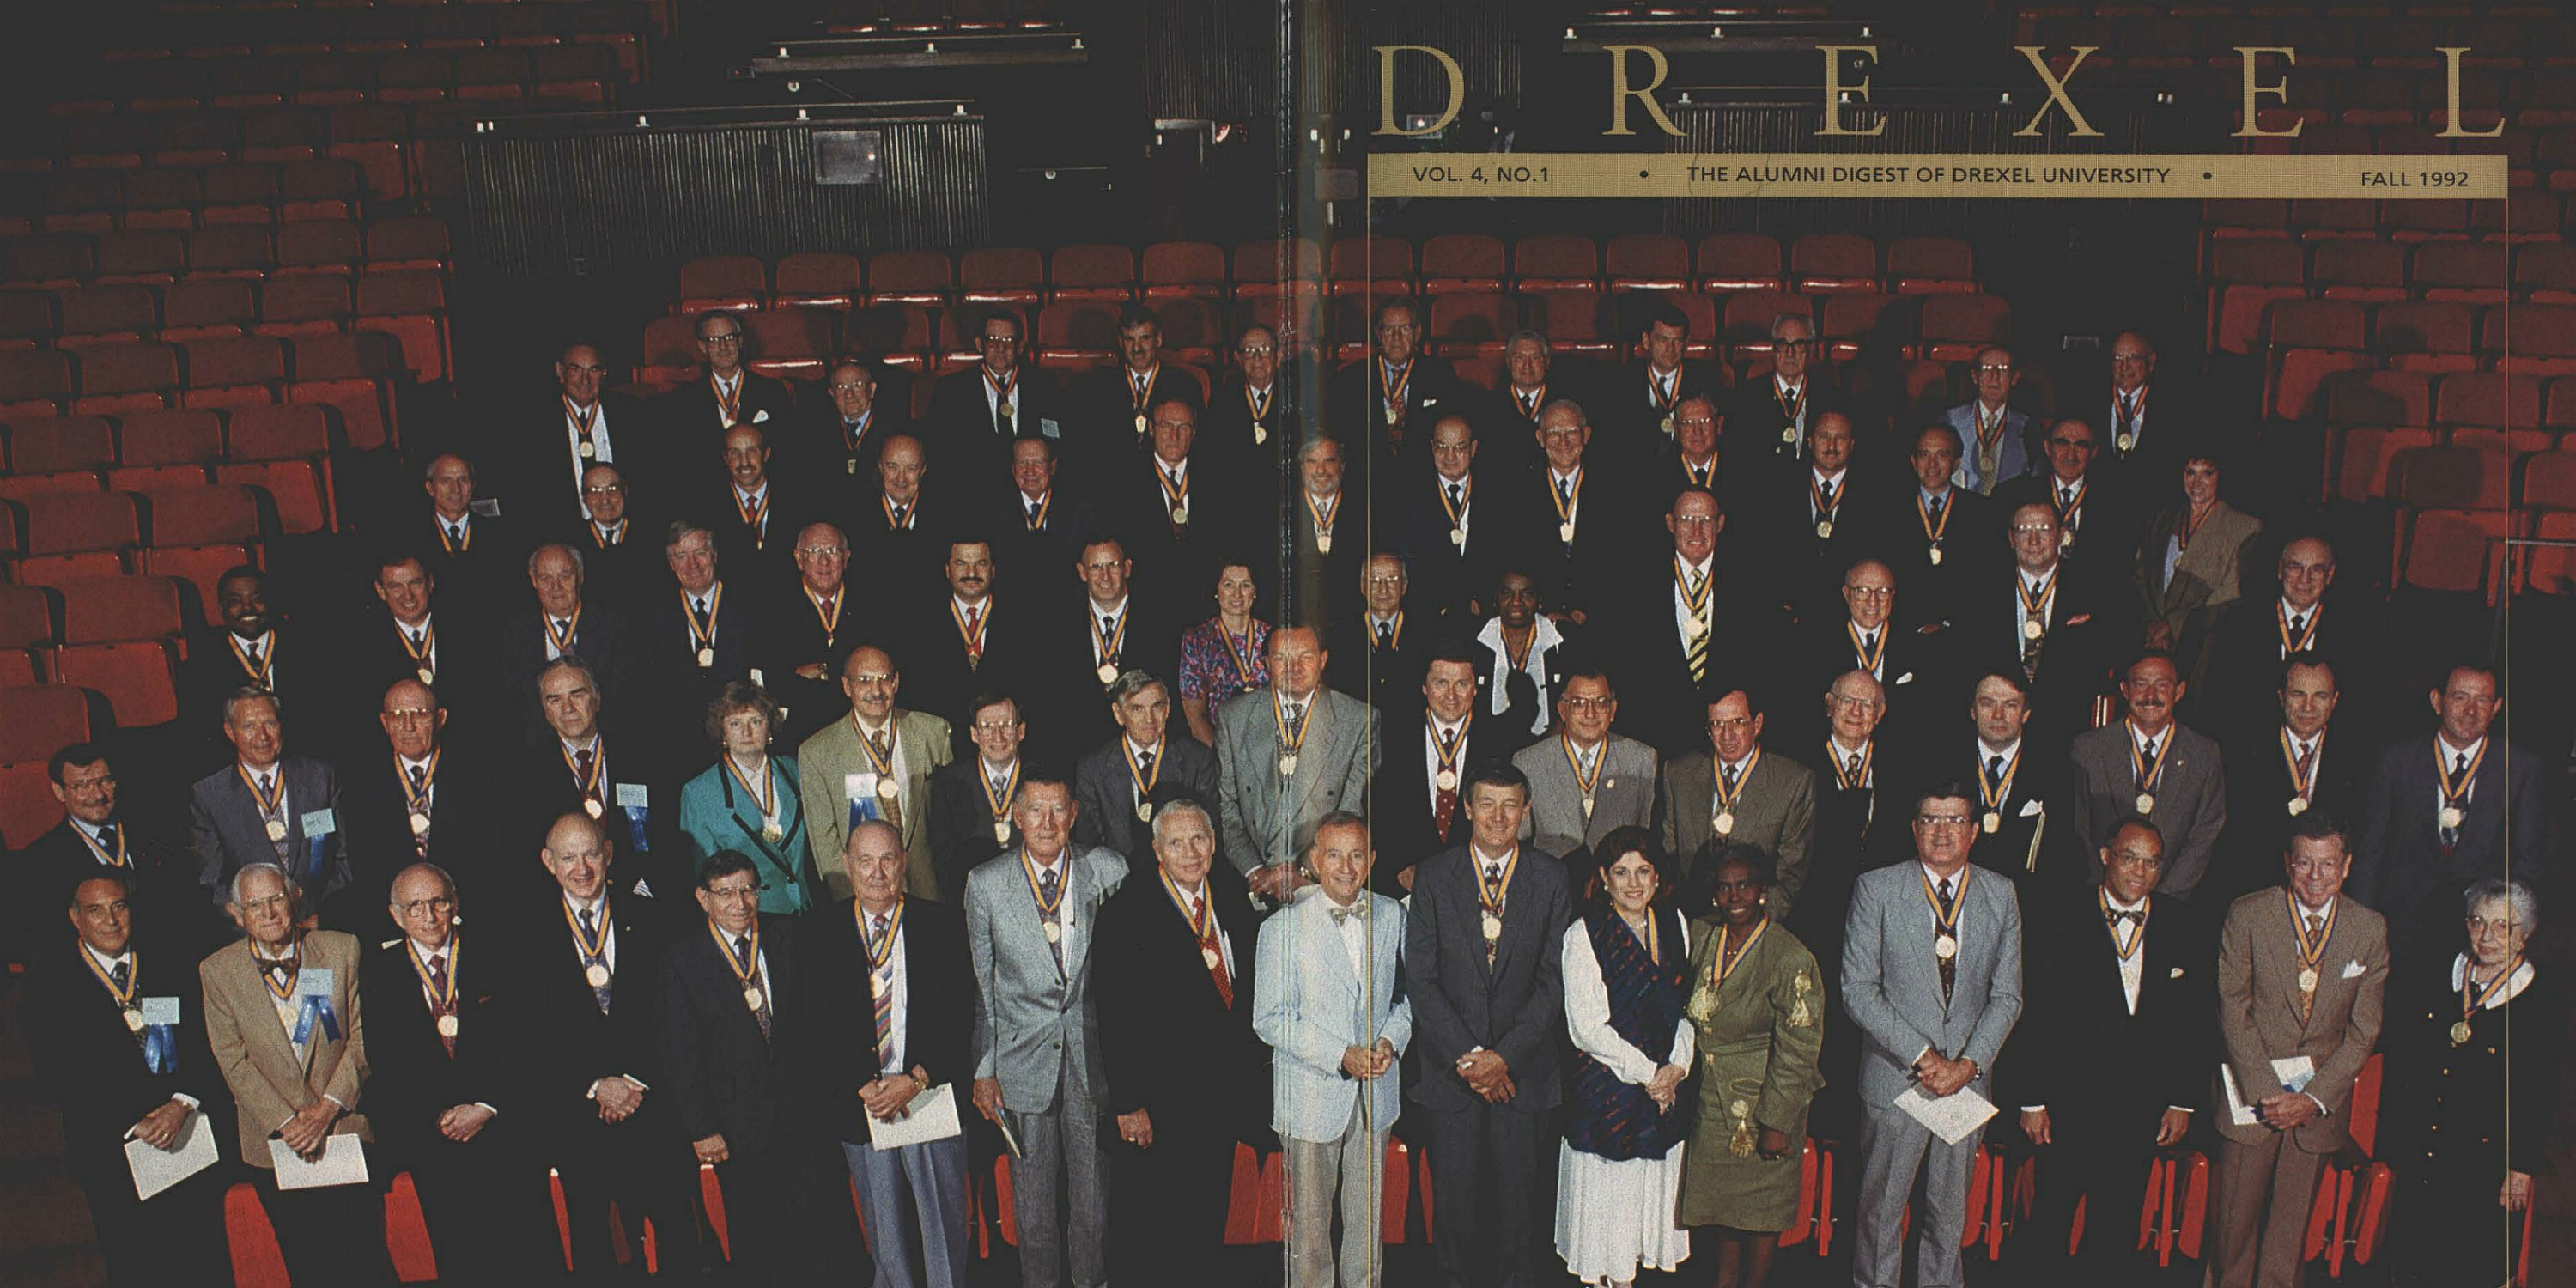 A composite of the front and back covers of the fall 1992 issue of Drexel's alumni magazine featuring the inaugural class of the Drexel 100 (with President Richard Breslin in the pale blue coat in the center of the bottom row). Magazine scan courtesy University Archives.